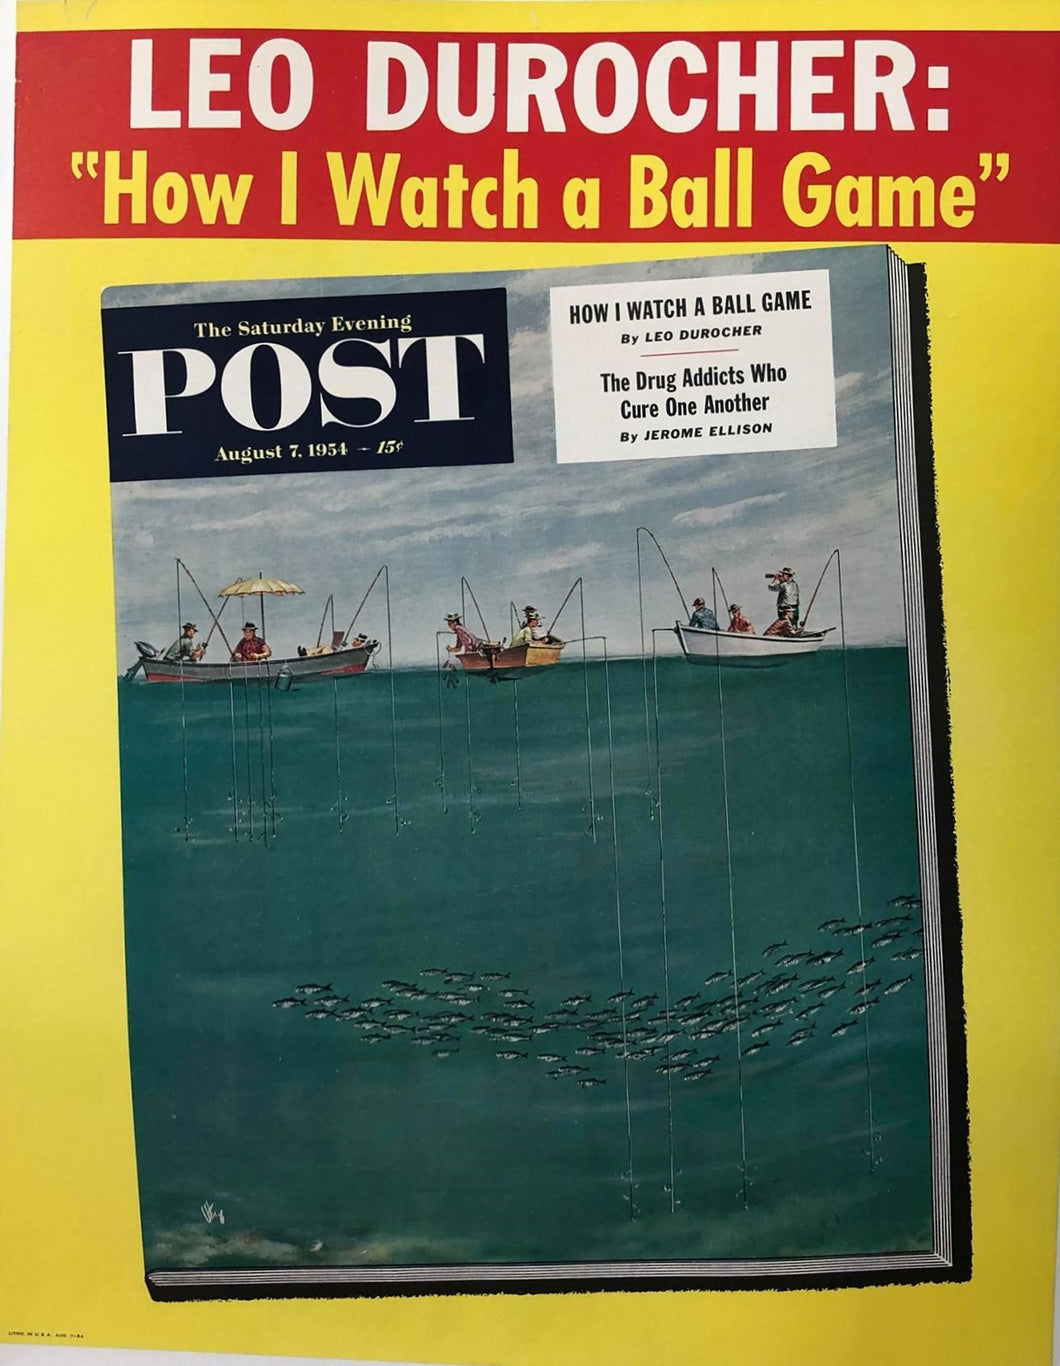 Saturday Evening Post (08/07/1954)